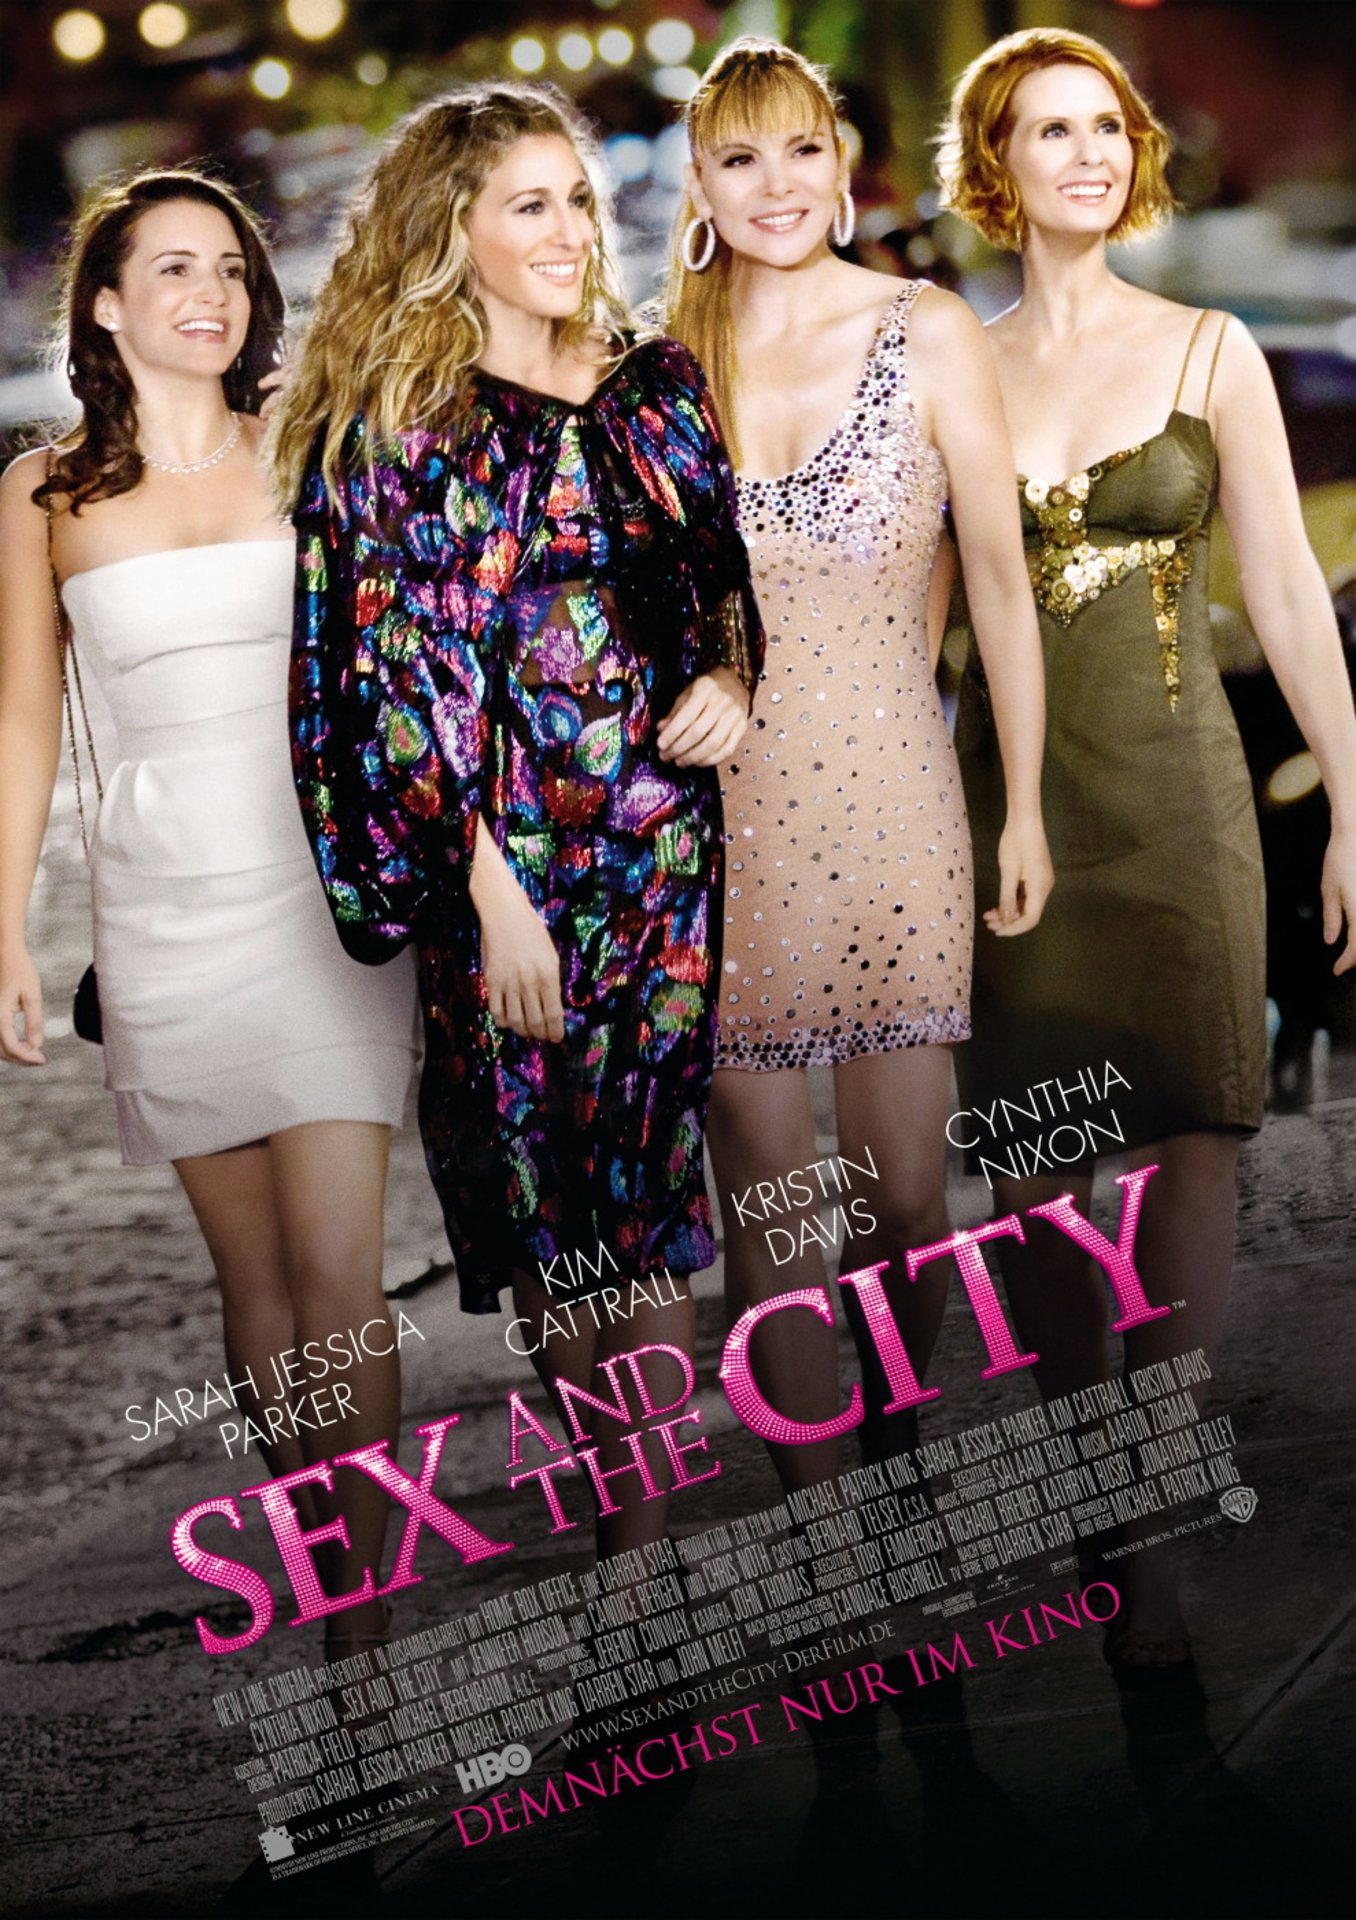 Sex And The City Movie Trailer 7